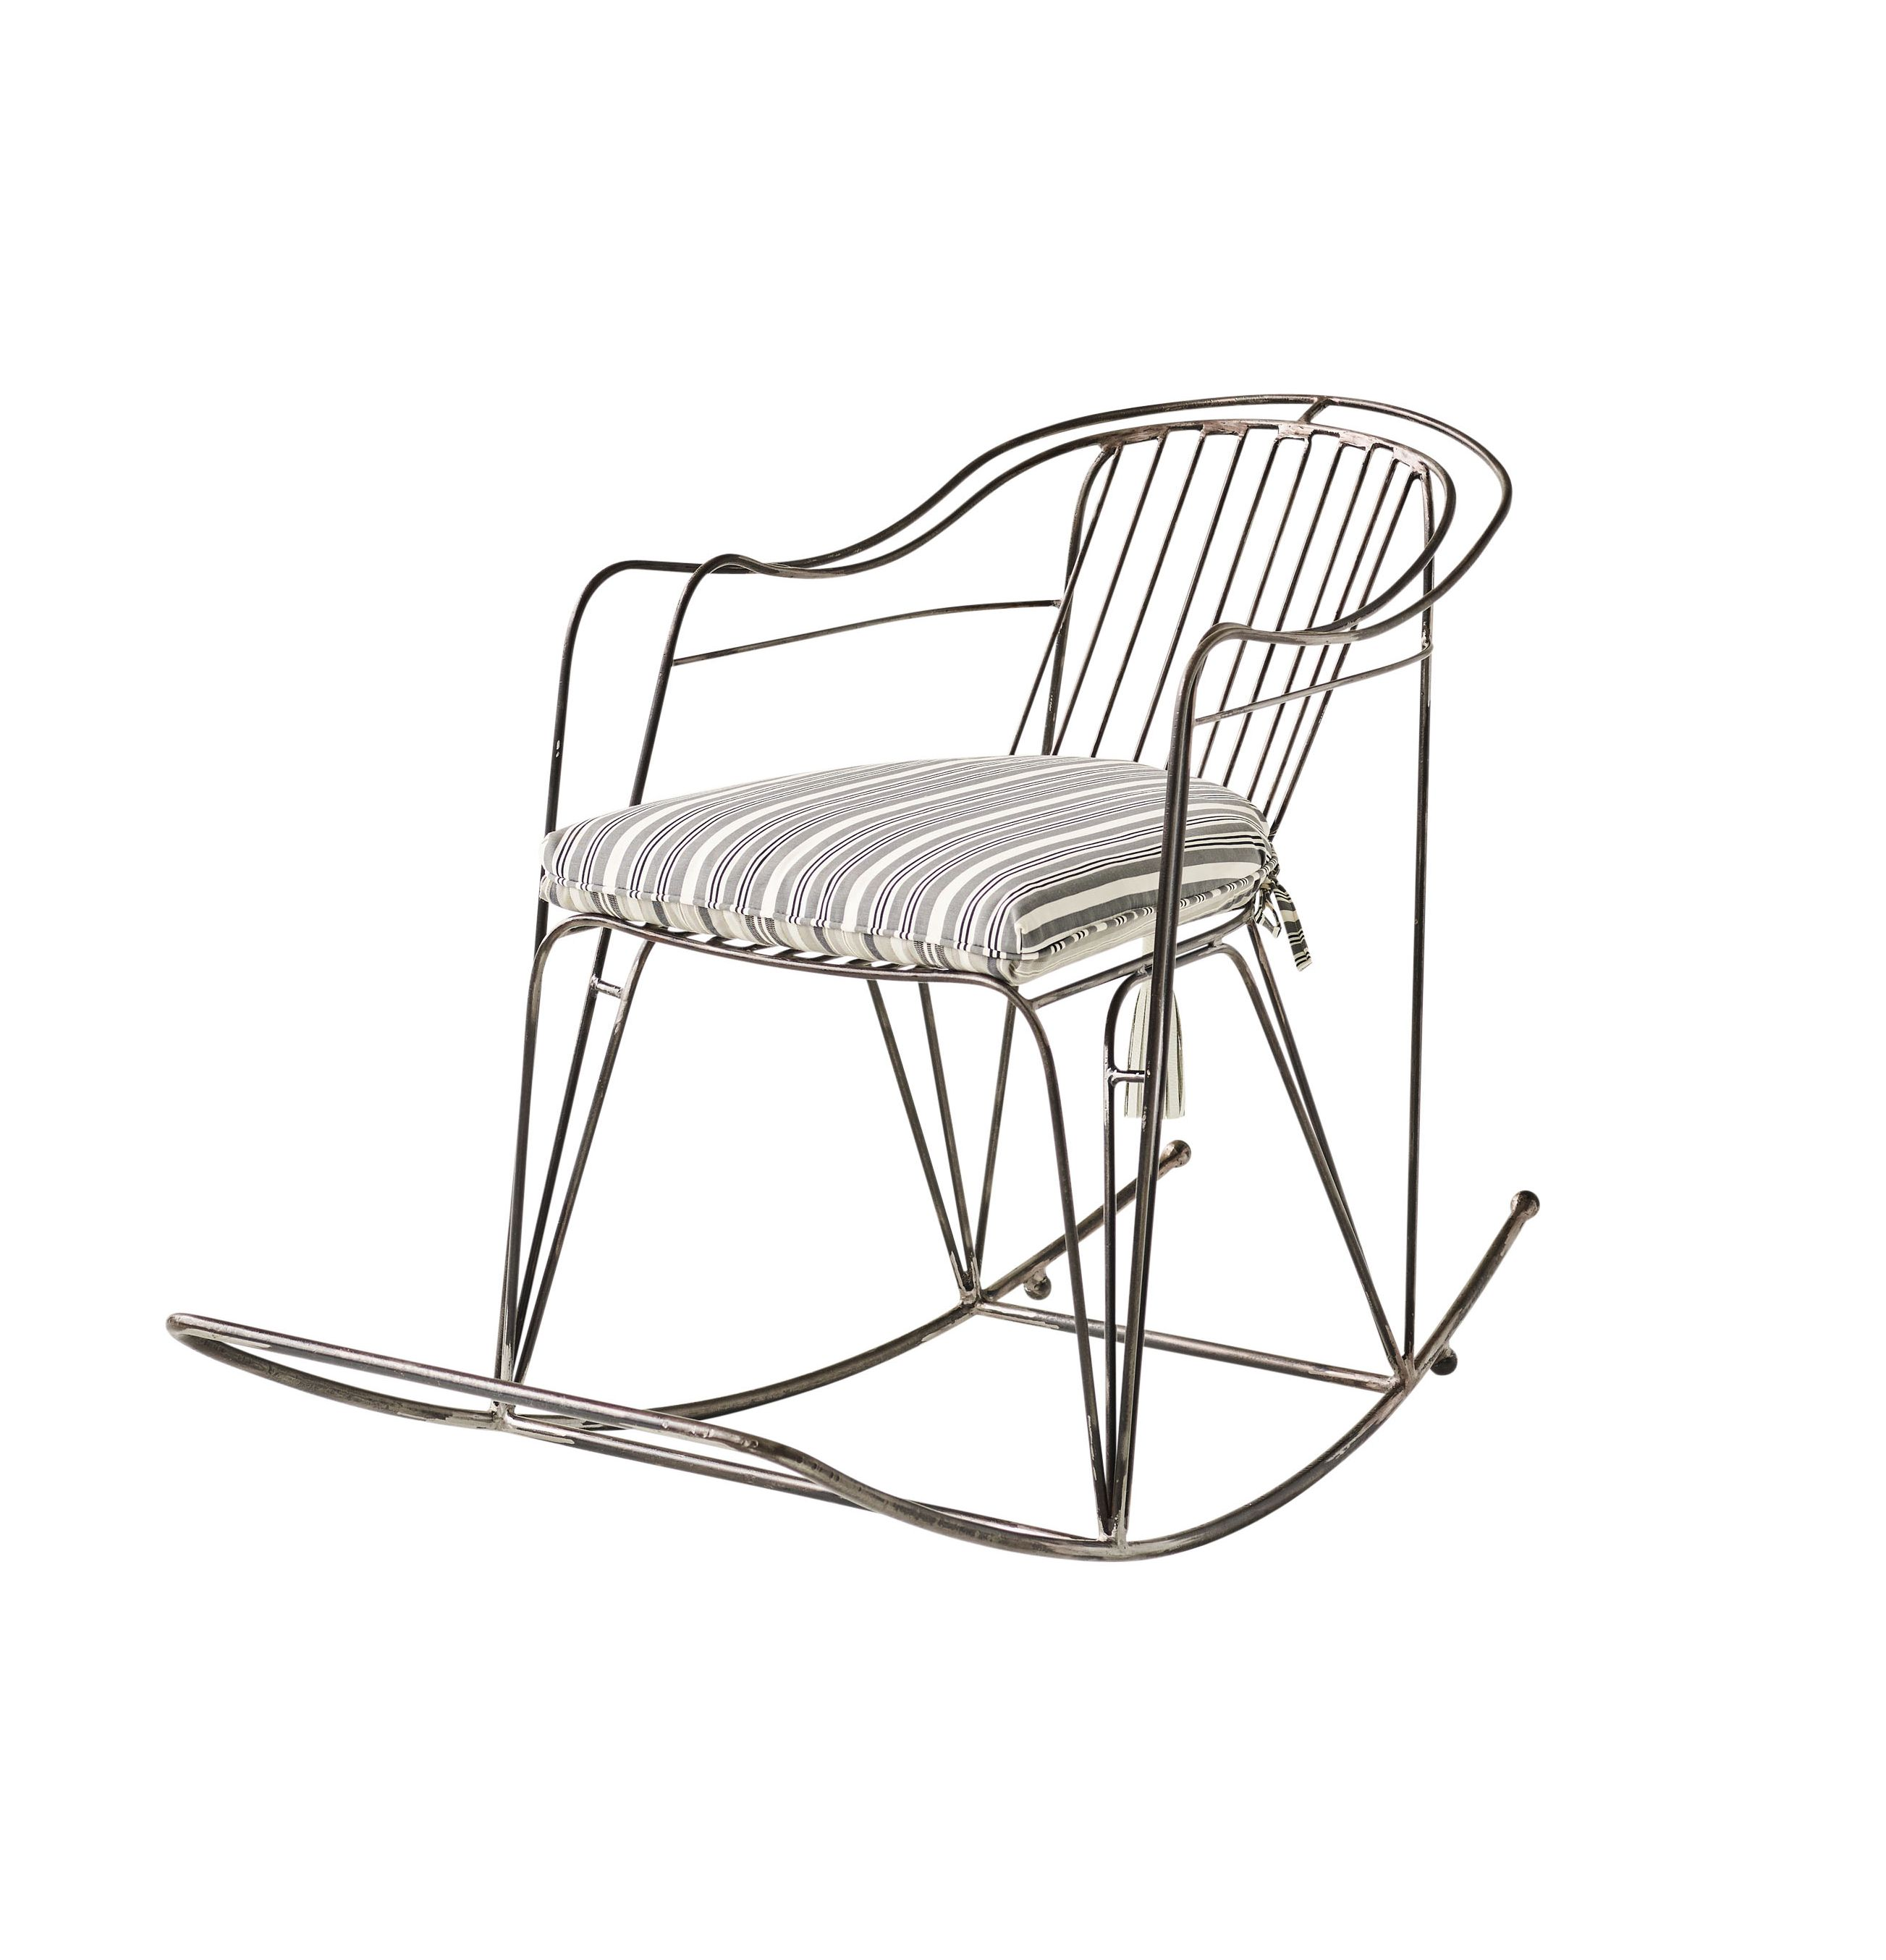 10 Rocking Chairs For Indoors Or Outdoors - Outdoor Rocking Chairs